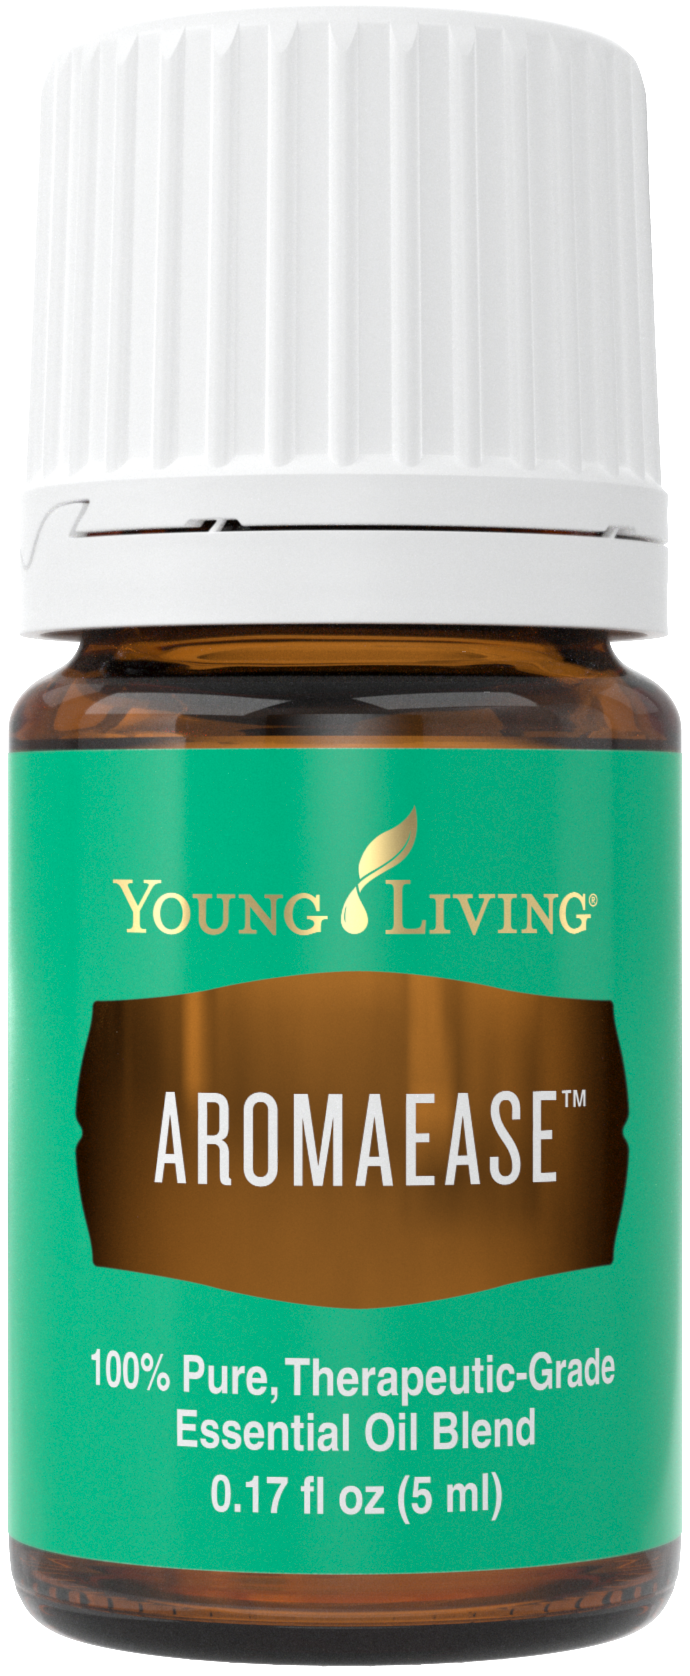 AromaEase Essential Oil by Young Living